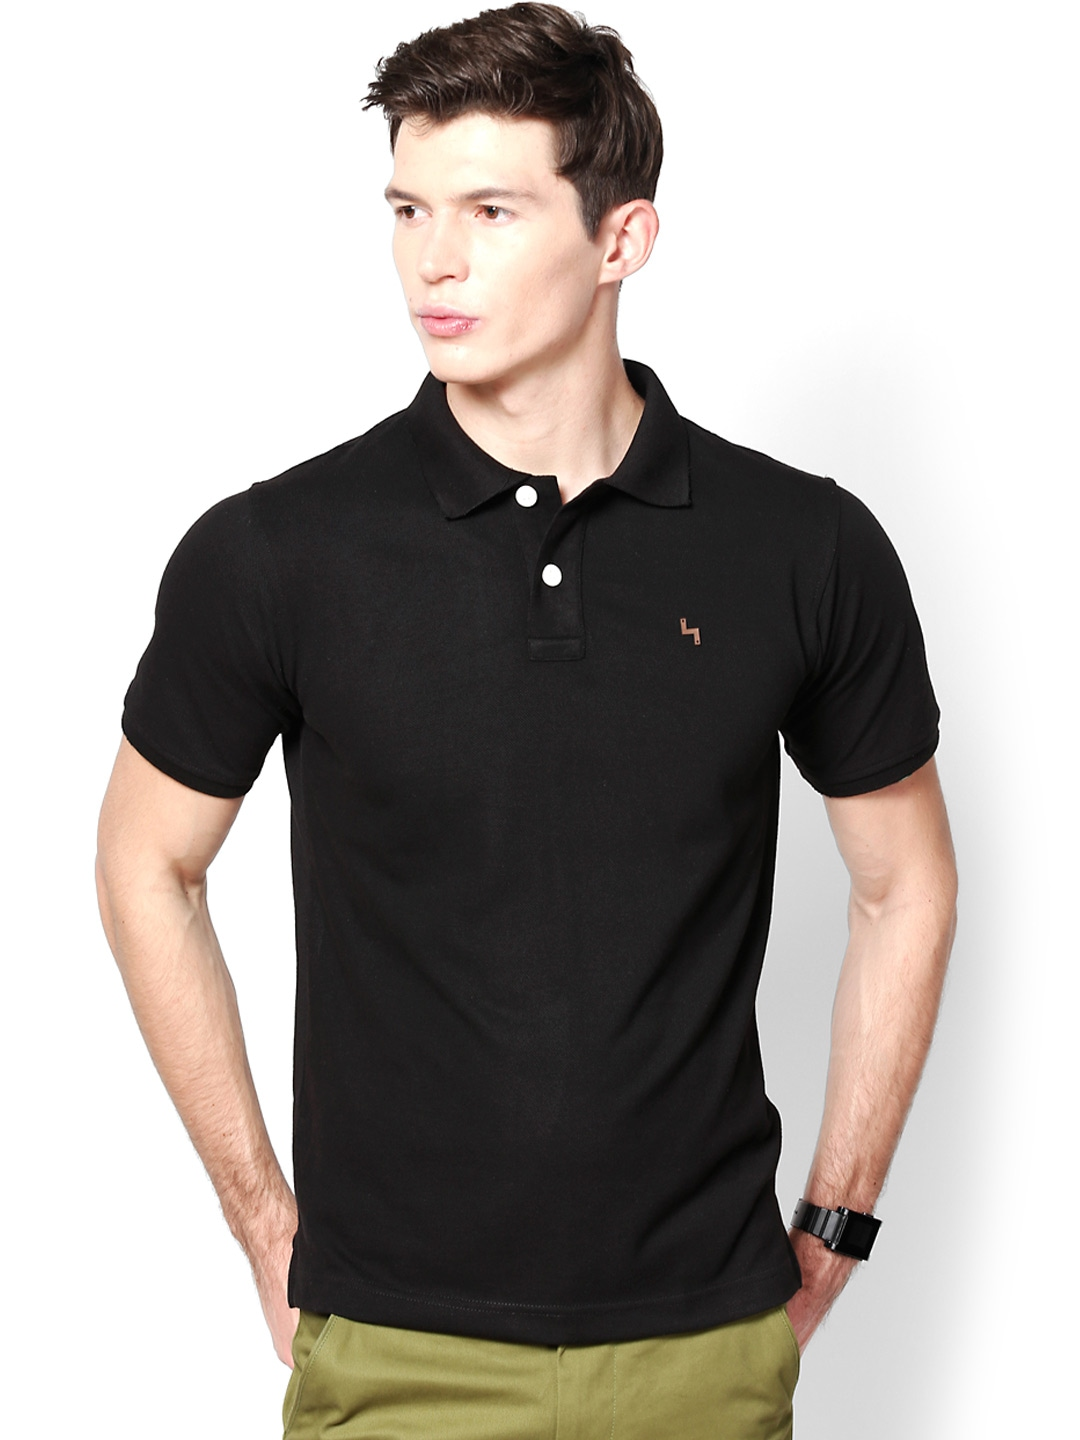 Myntra haute couture men pack of 2 polo t shirts 729425 for Haute couture men